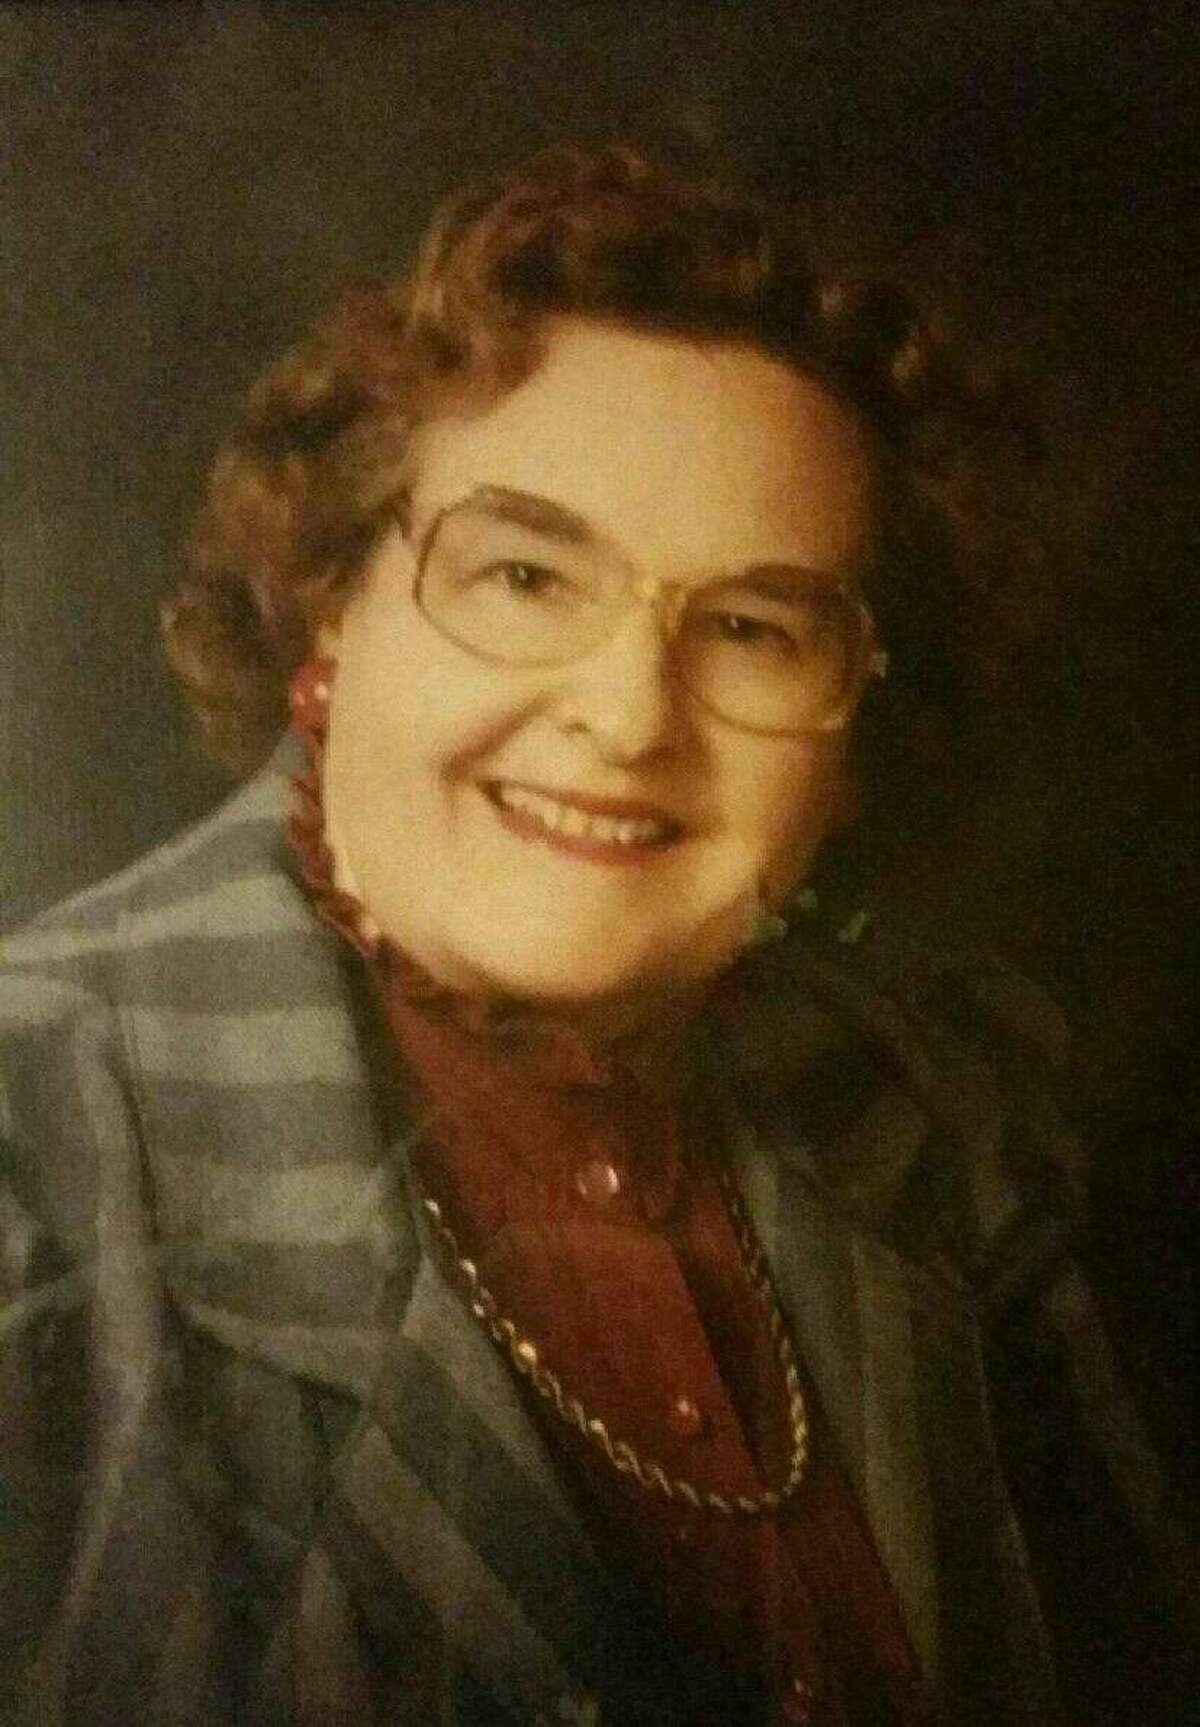 Dr. Frankie Nell Nations Forist was one of just a few women to graduate from the Baylor College of Medicine in the 1950s. She practiced anesthesiology in San Antonio for almost three decades.